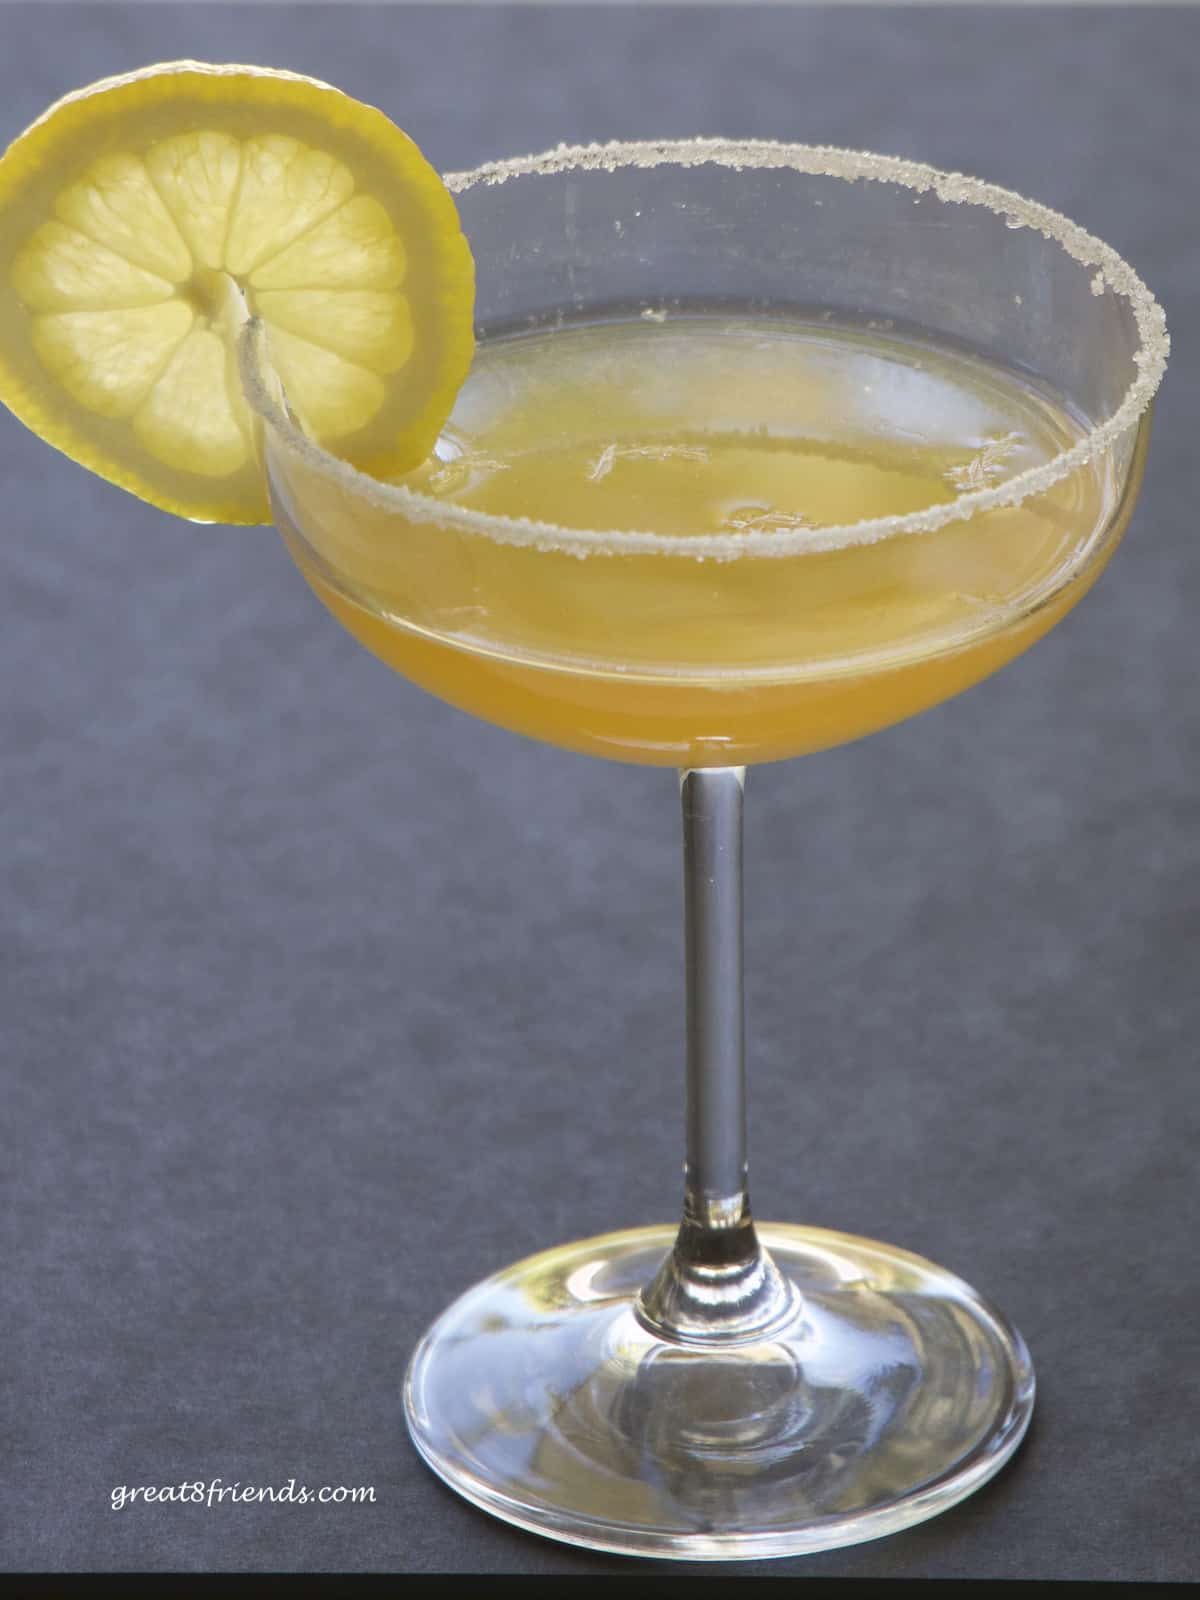 A sidecar cocktail in a coupe glass garnished with a slice of lemon.